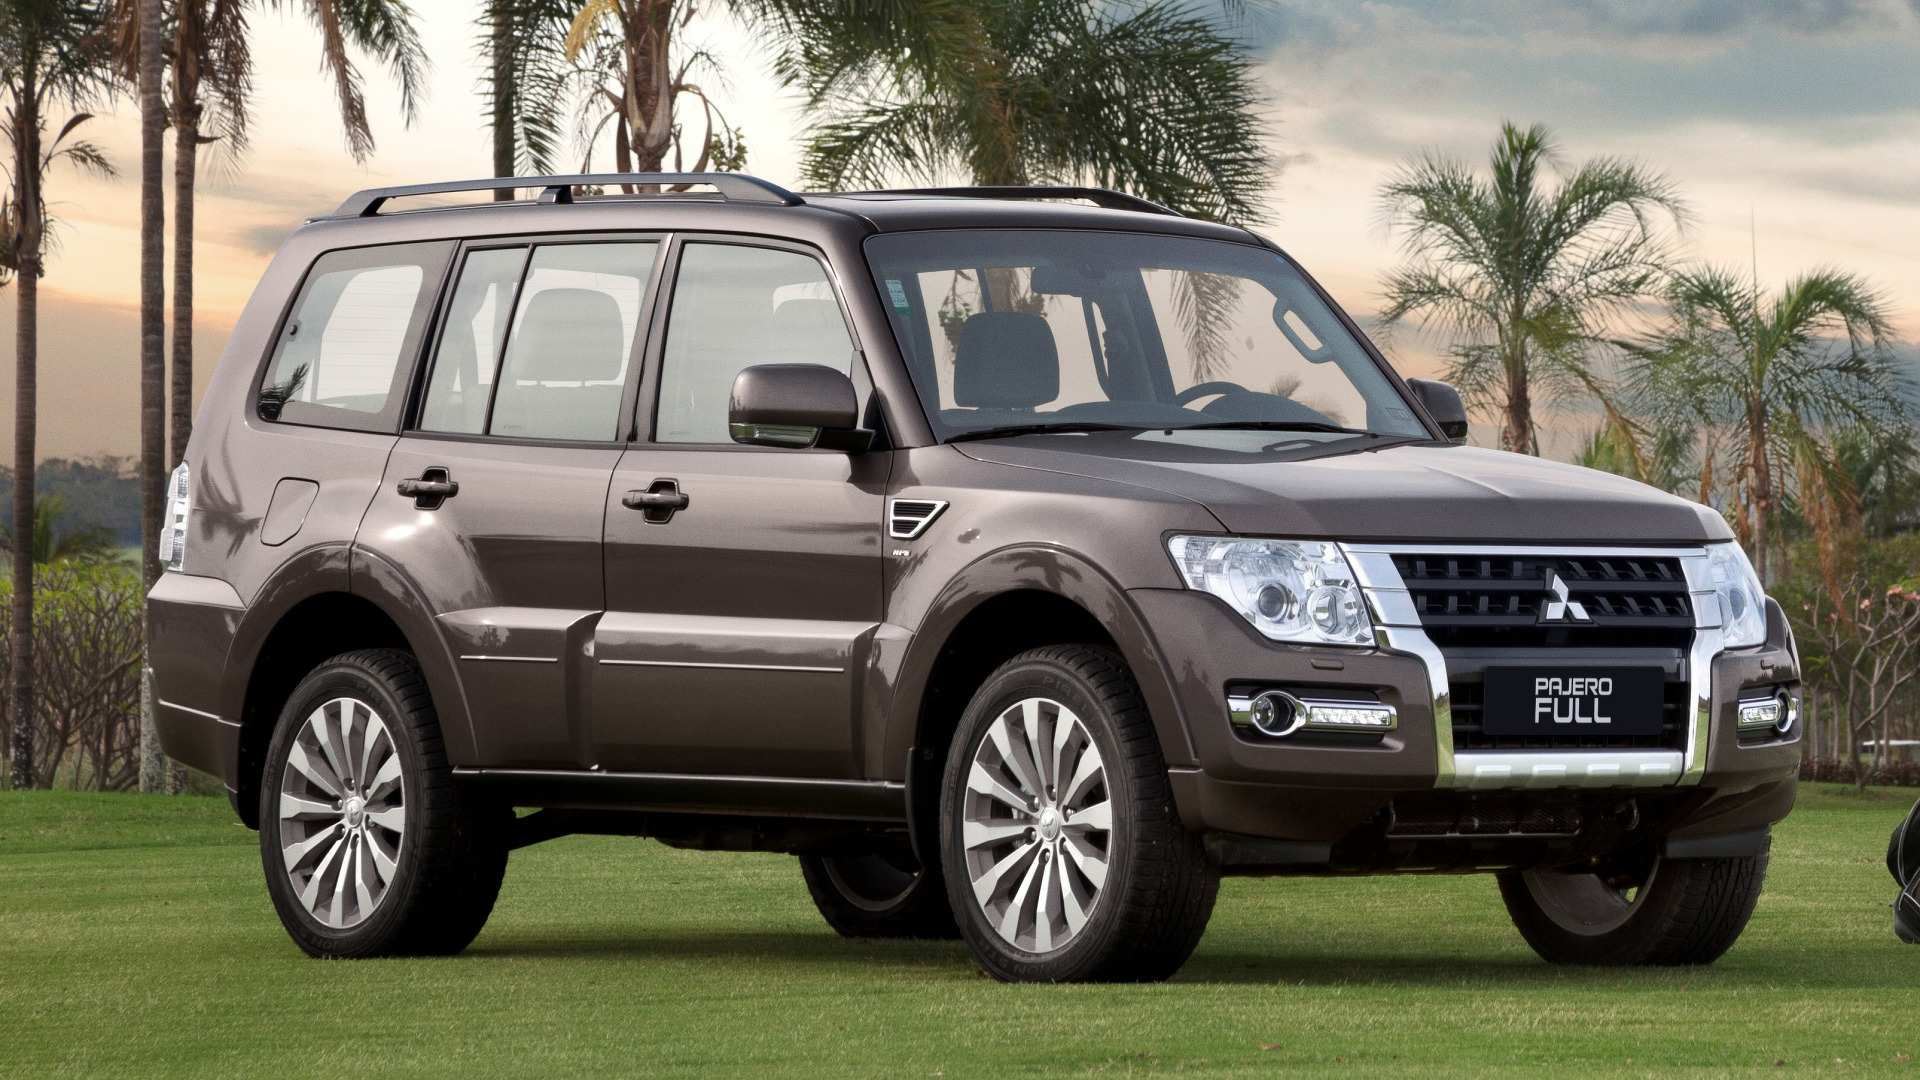 28 All New Mitsubishi Pajero Full 2020 Overview for Mitsubishi Pajero Full 2020